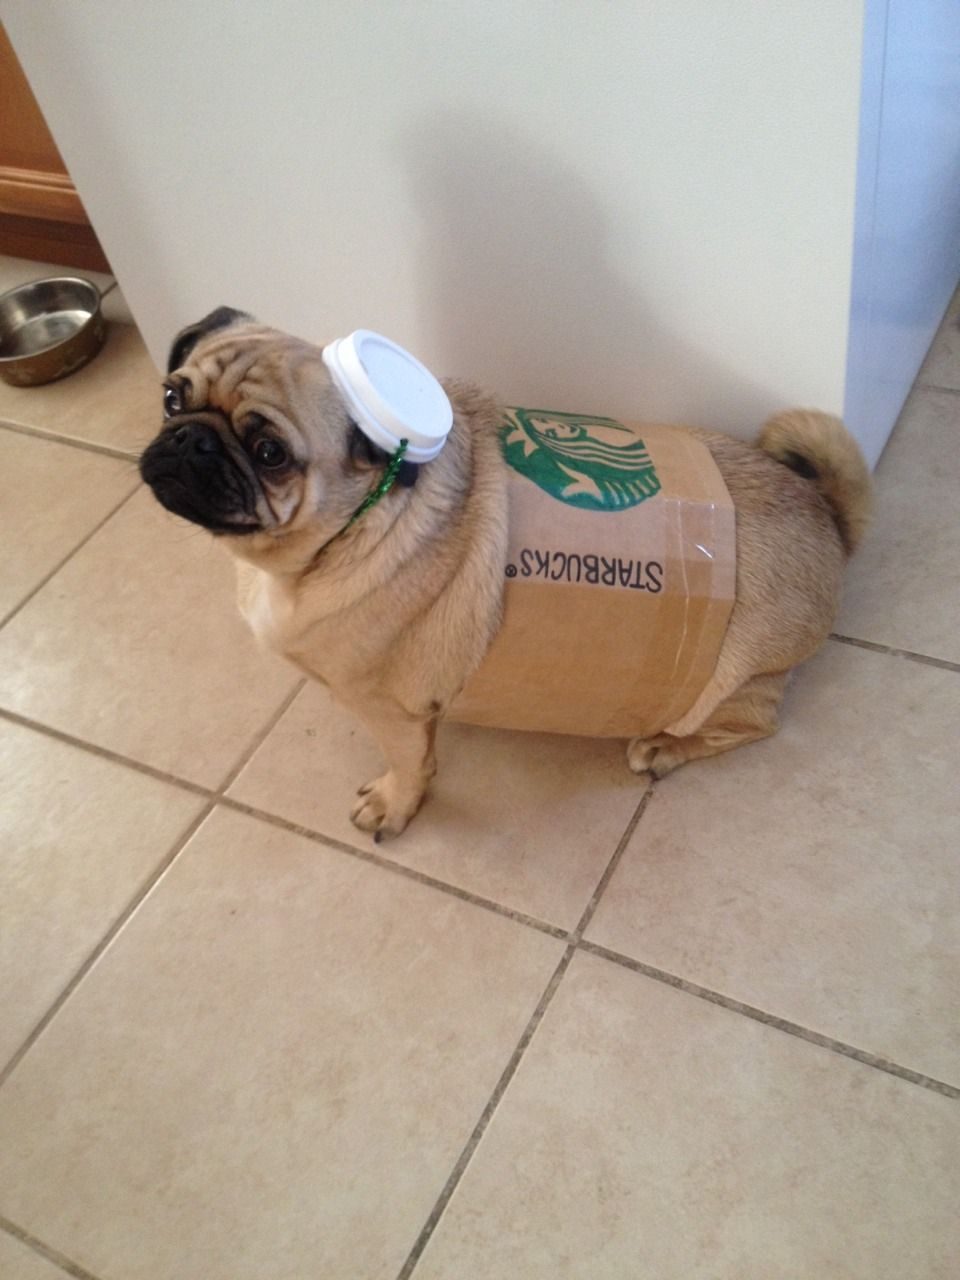 Little Latte S Costume This Year Cute Pugs Funny Animals Dog Puns